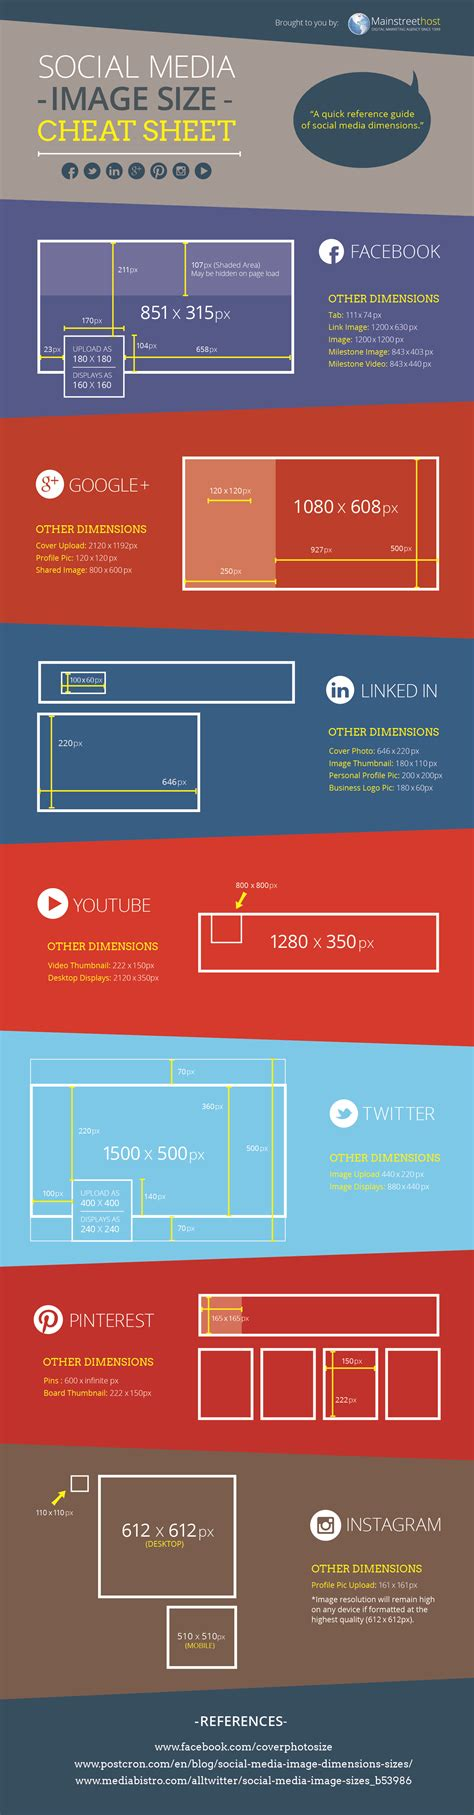 facebook cheat sheet image size and dimensions infographic facebook twitter pinterest instagram social media